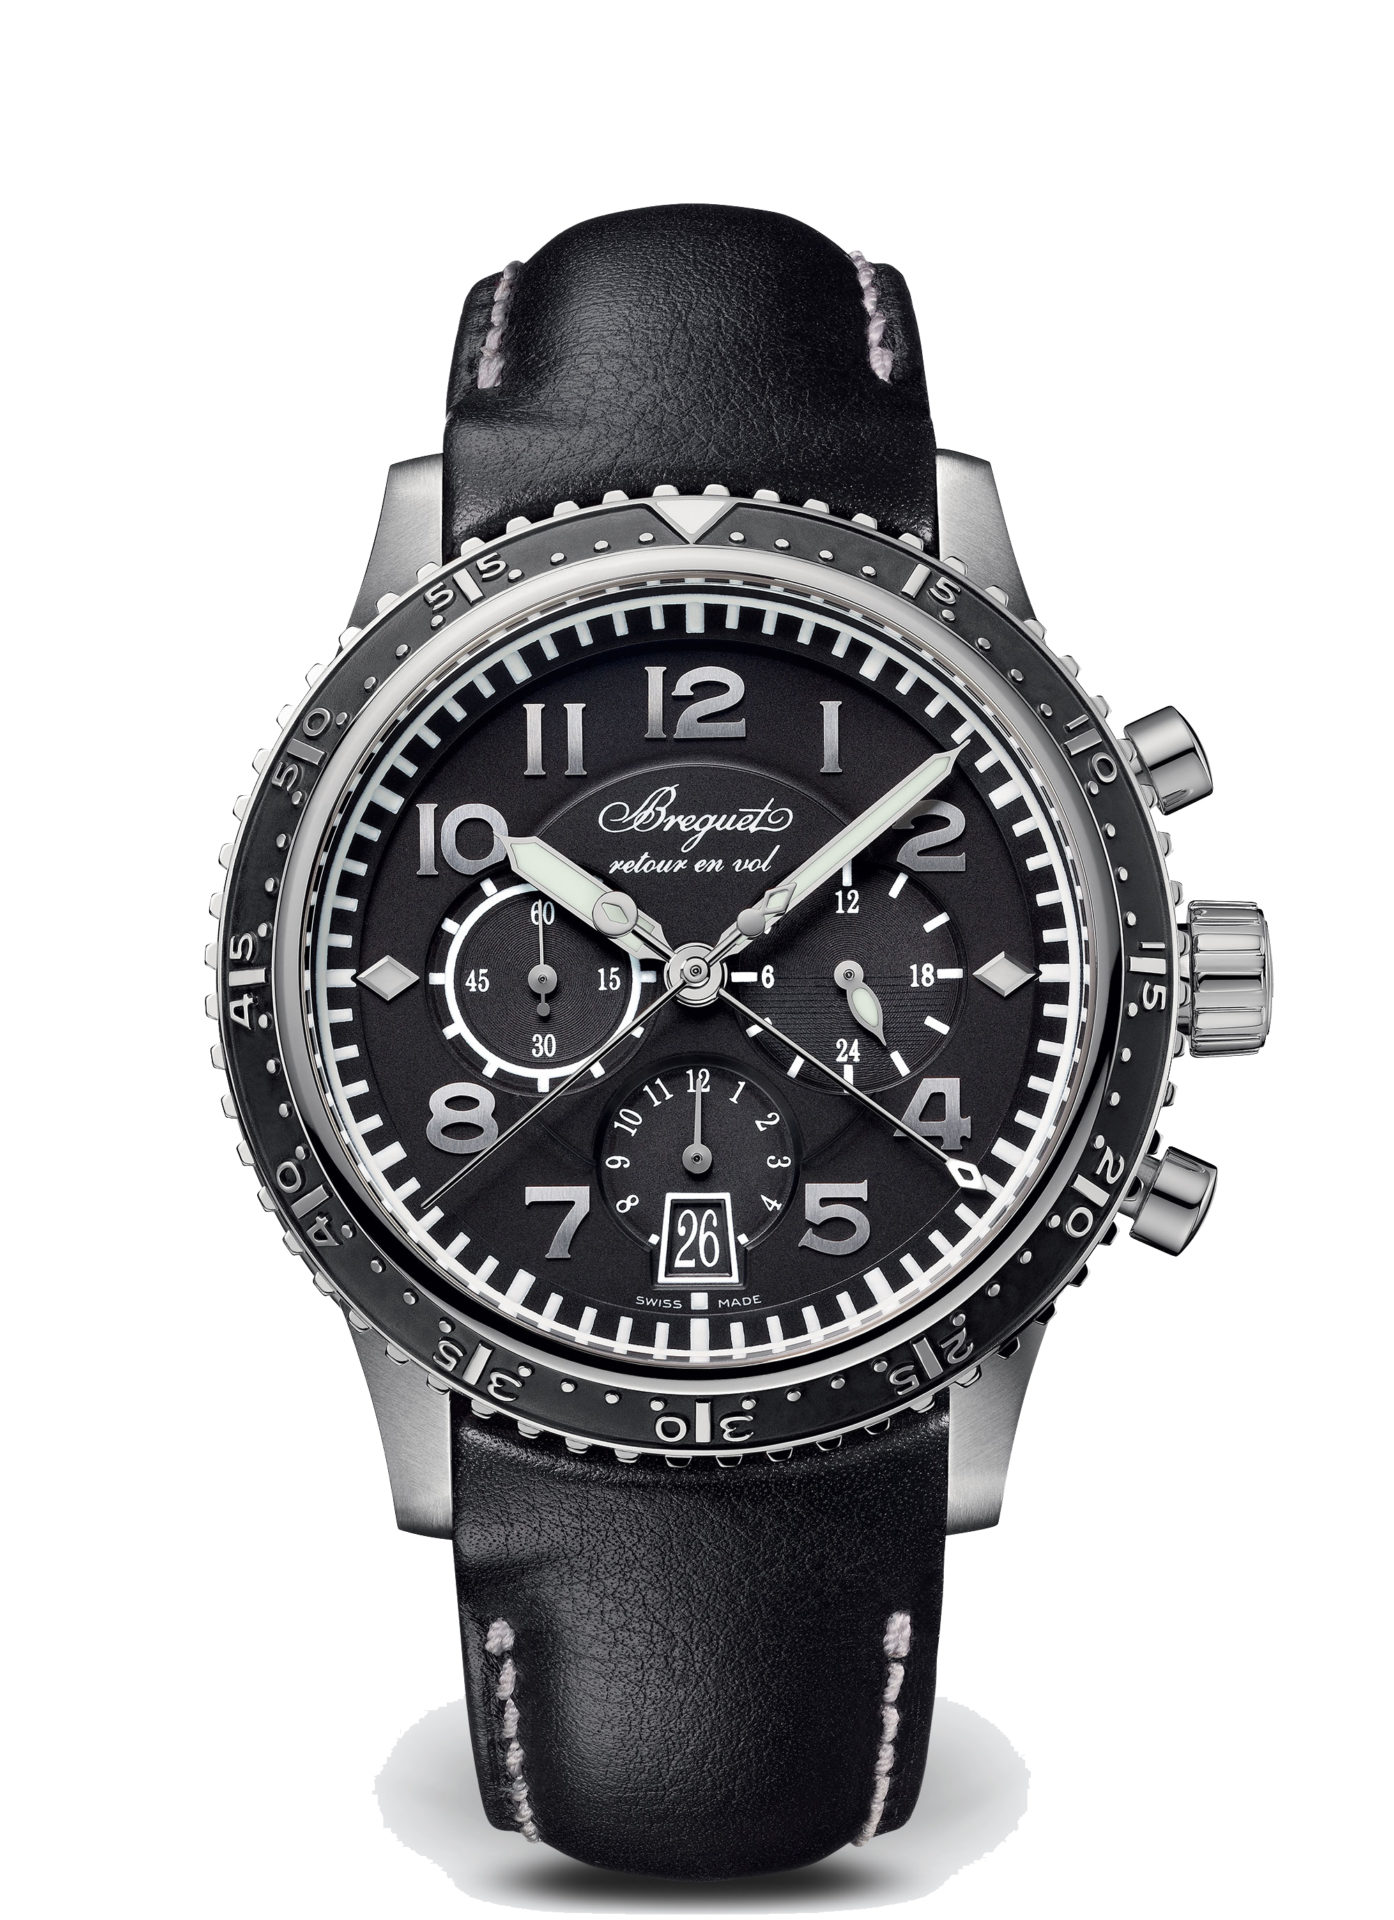 Breguet-Type-XX-XXI-XXII-3810-Hall-of-Time-3810ti-h2-3zu